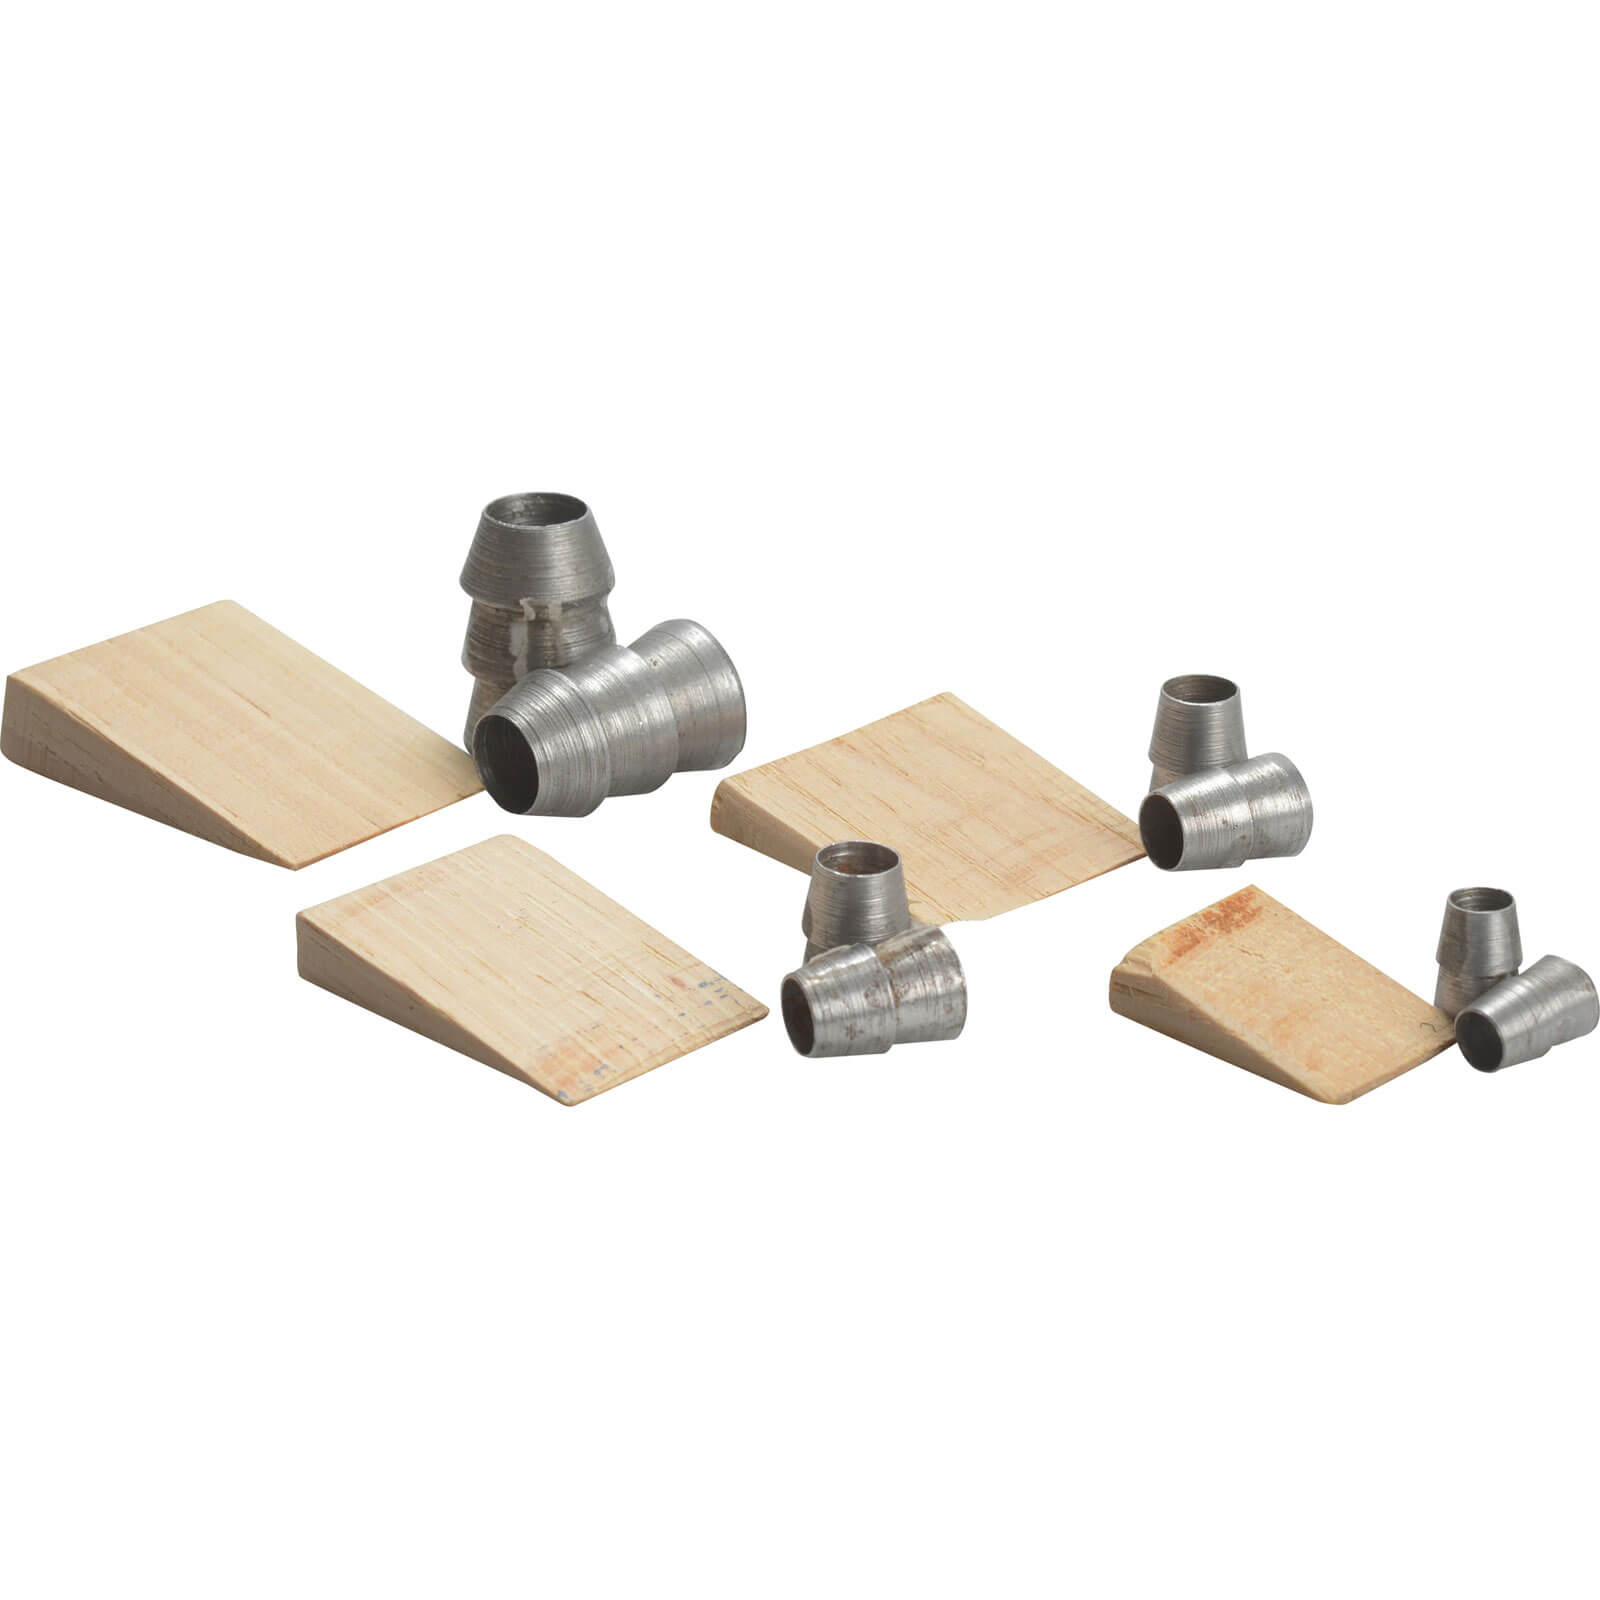 Image of Faithfull Assorted Hammer Wedges Pack of 12